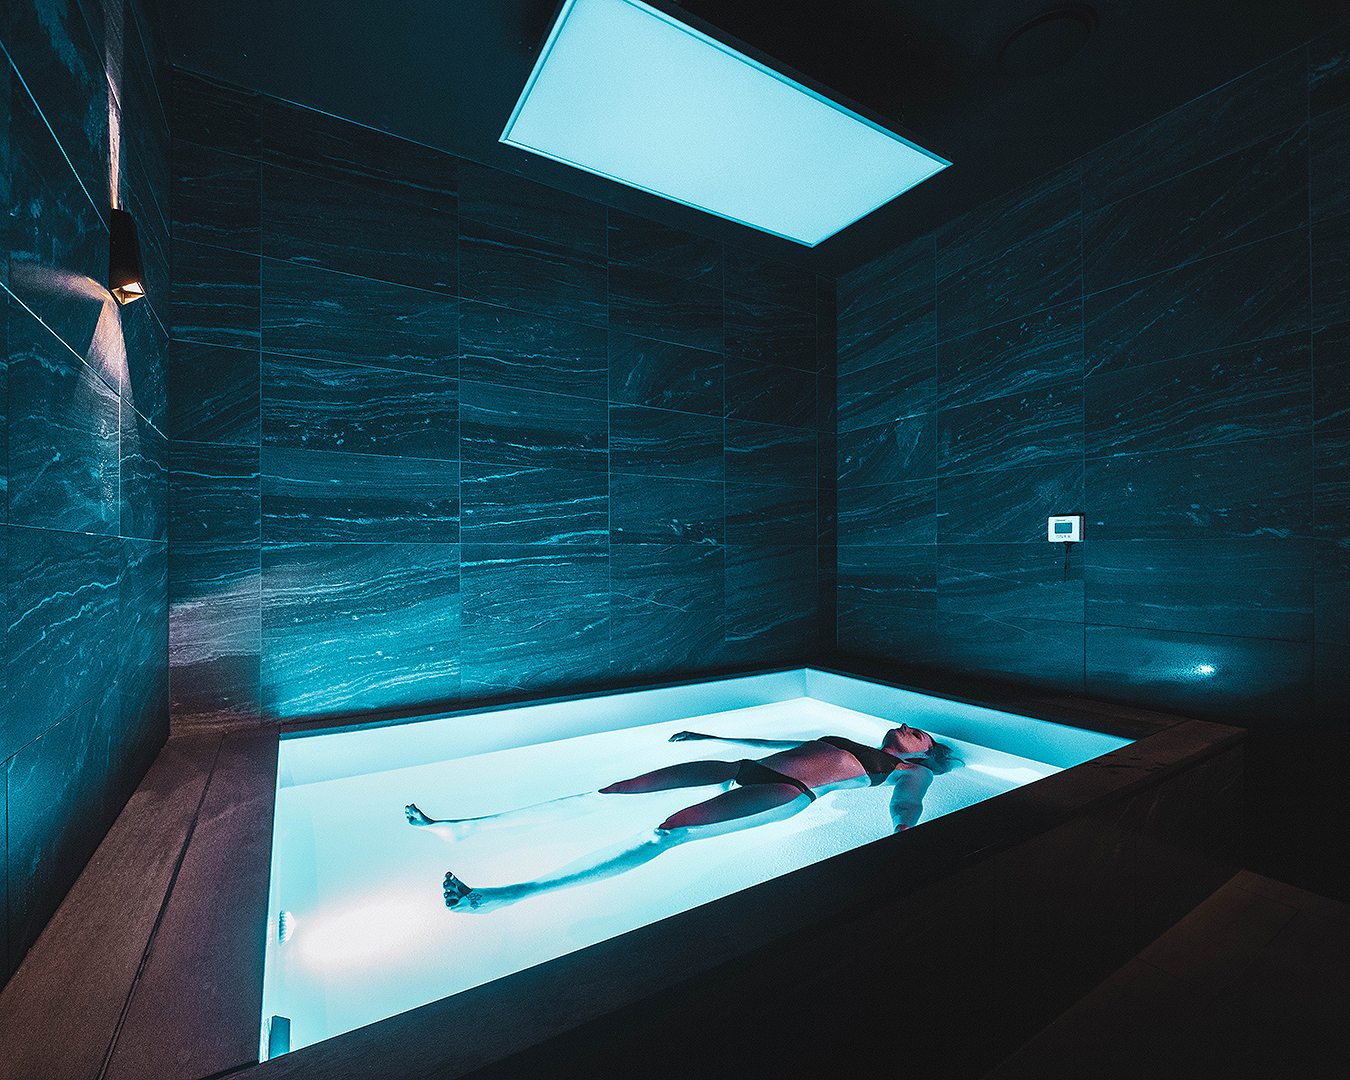 A person relaxes in a luxurious float room at City Cave.